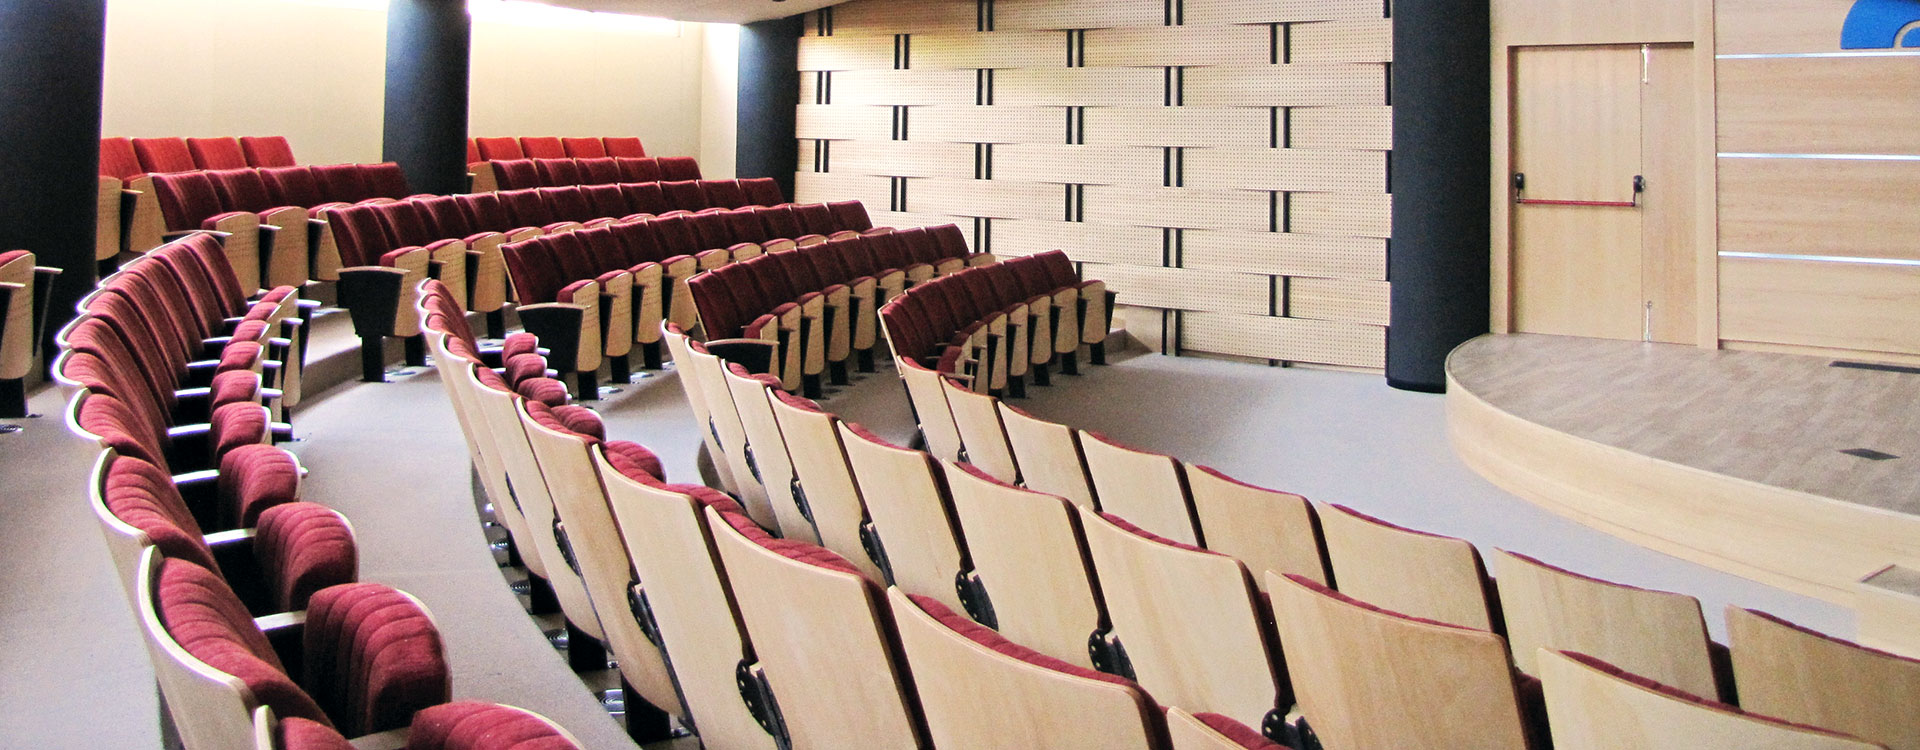 UOM Avellaneda Auditorio